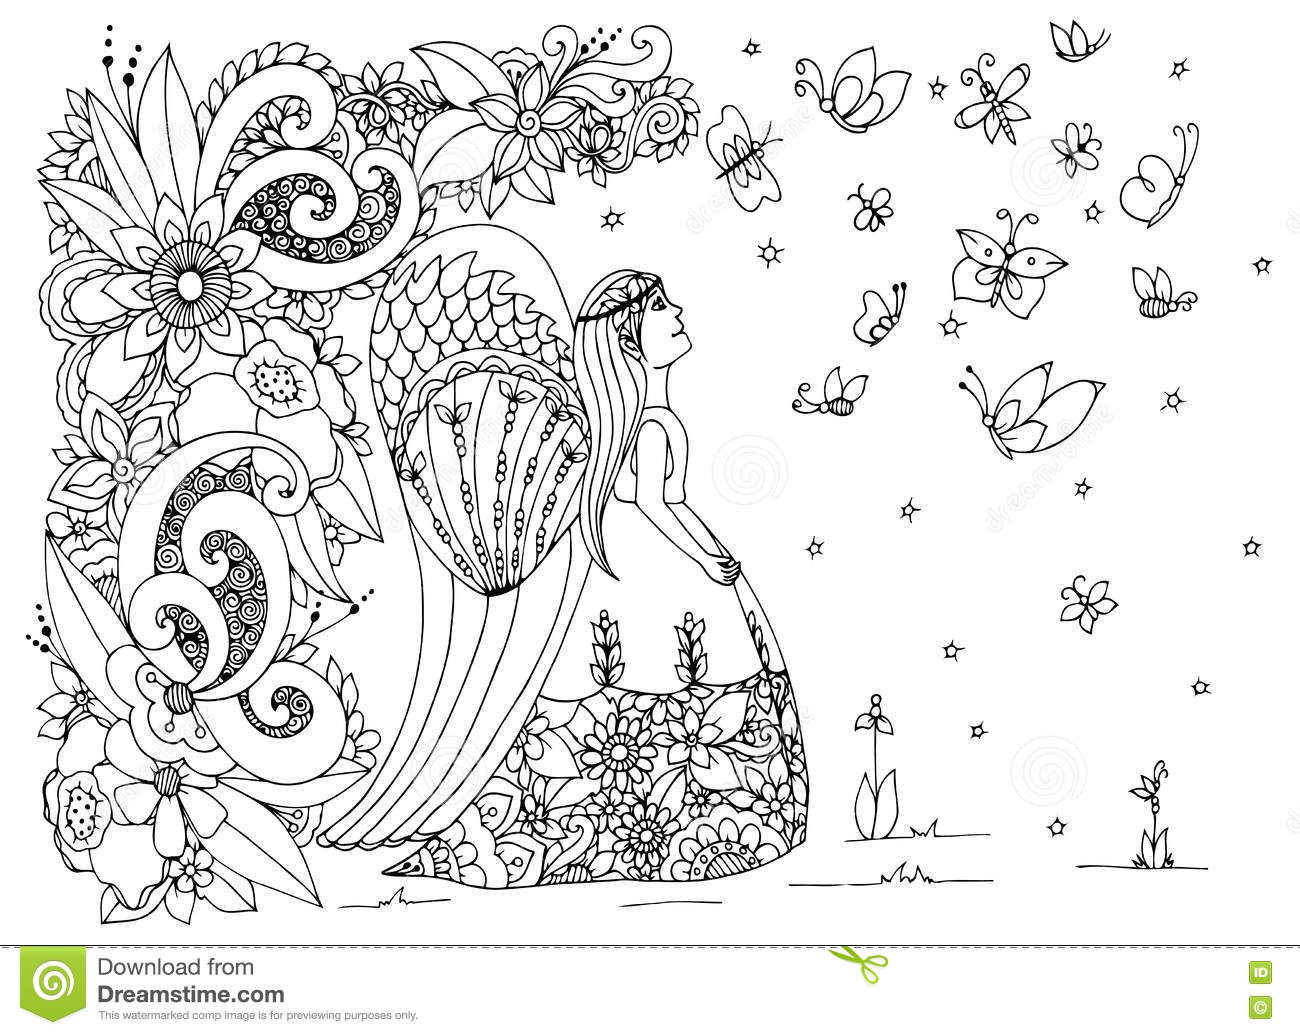 angel flower girl coloring book vector illustration zen tangle angel girl with flowers - Flower Girl Coloring Book